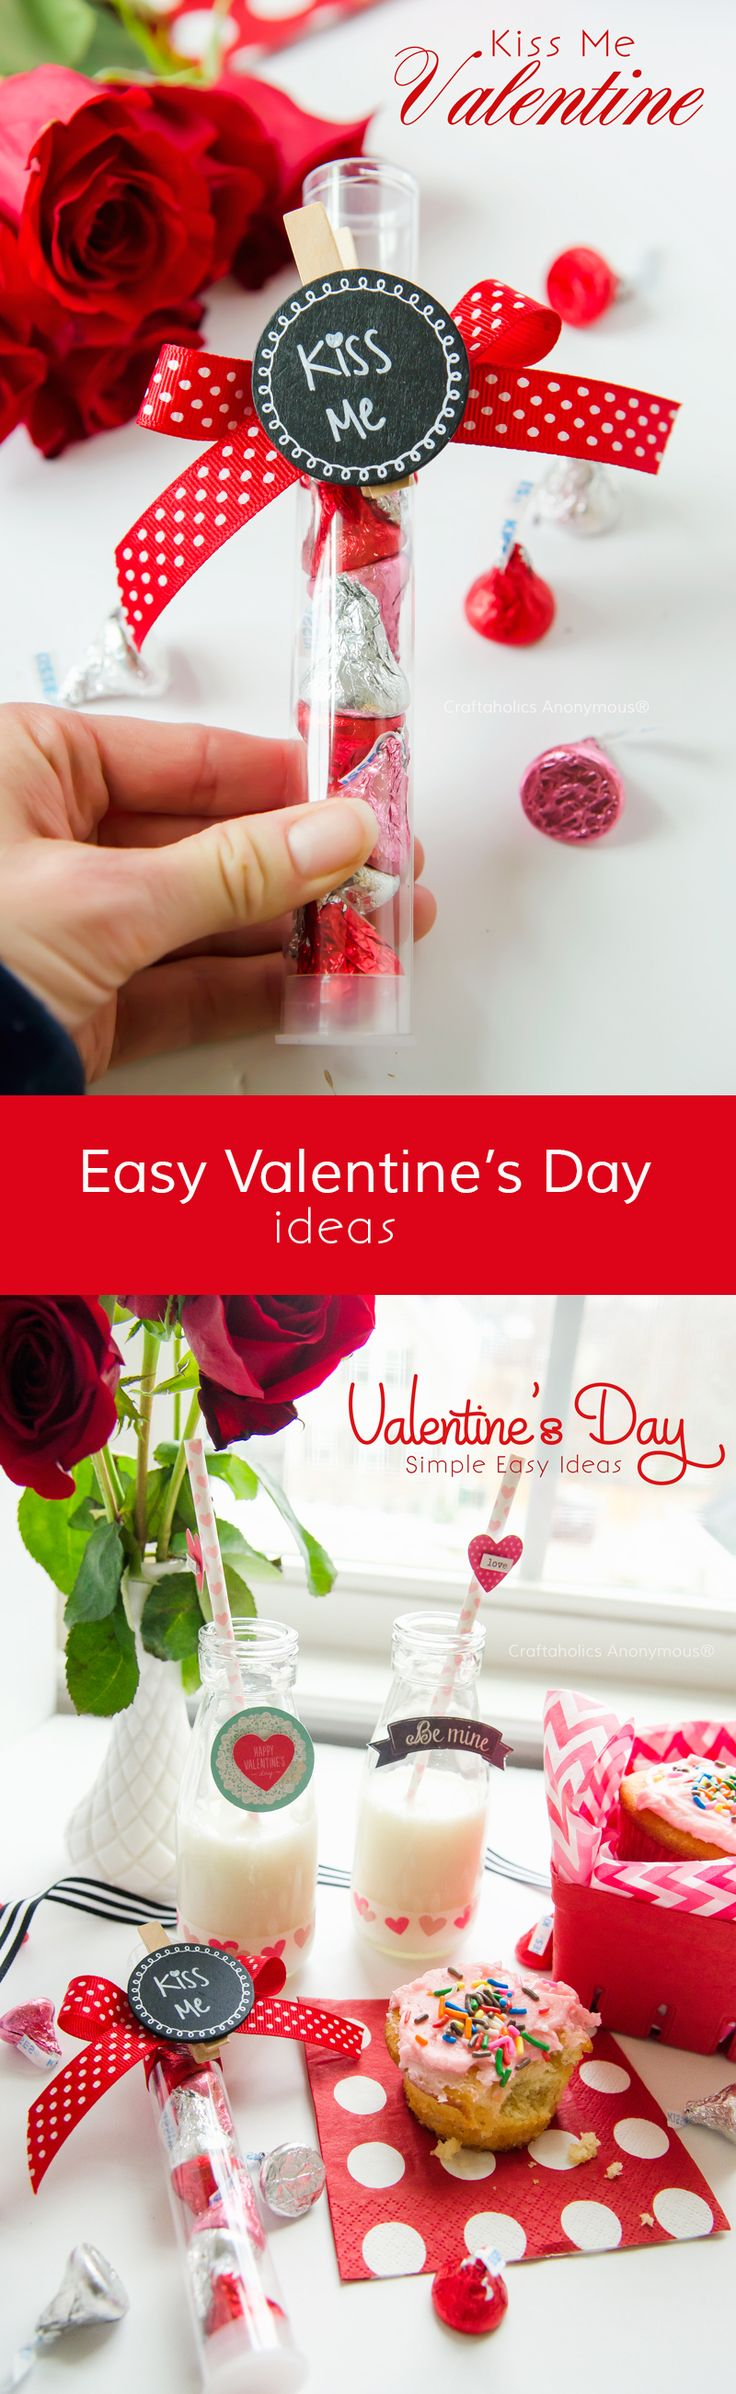 Easy Valentines Day Ideas that can be done quickly and on a small budget #OneSpotValentine